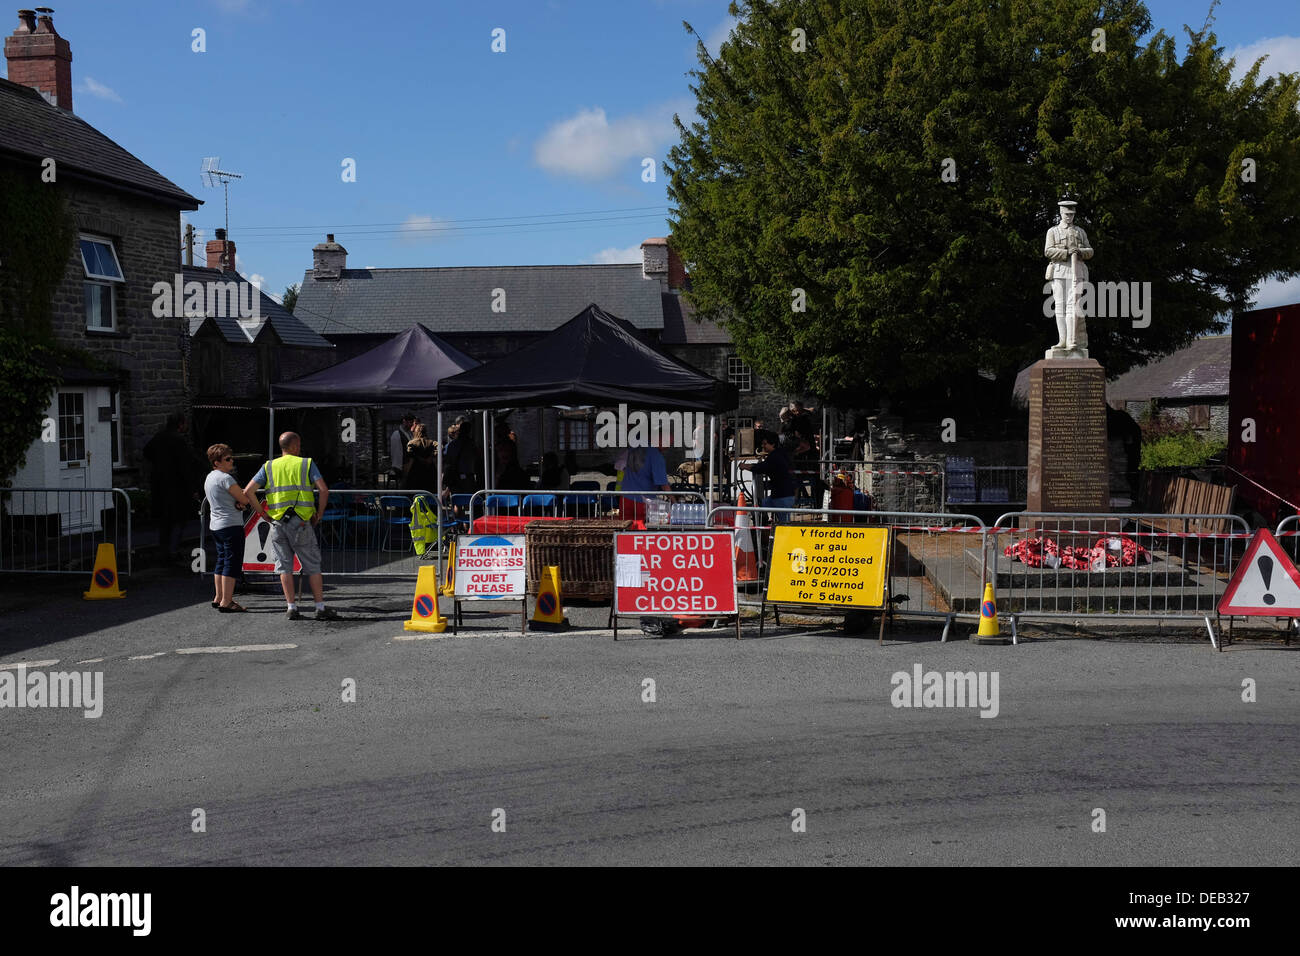 Signs for a road closure at a film location, in a village in Wales , UK - Stock Image